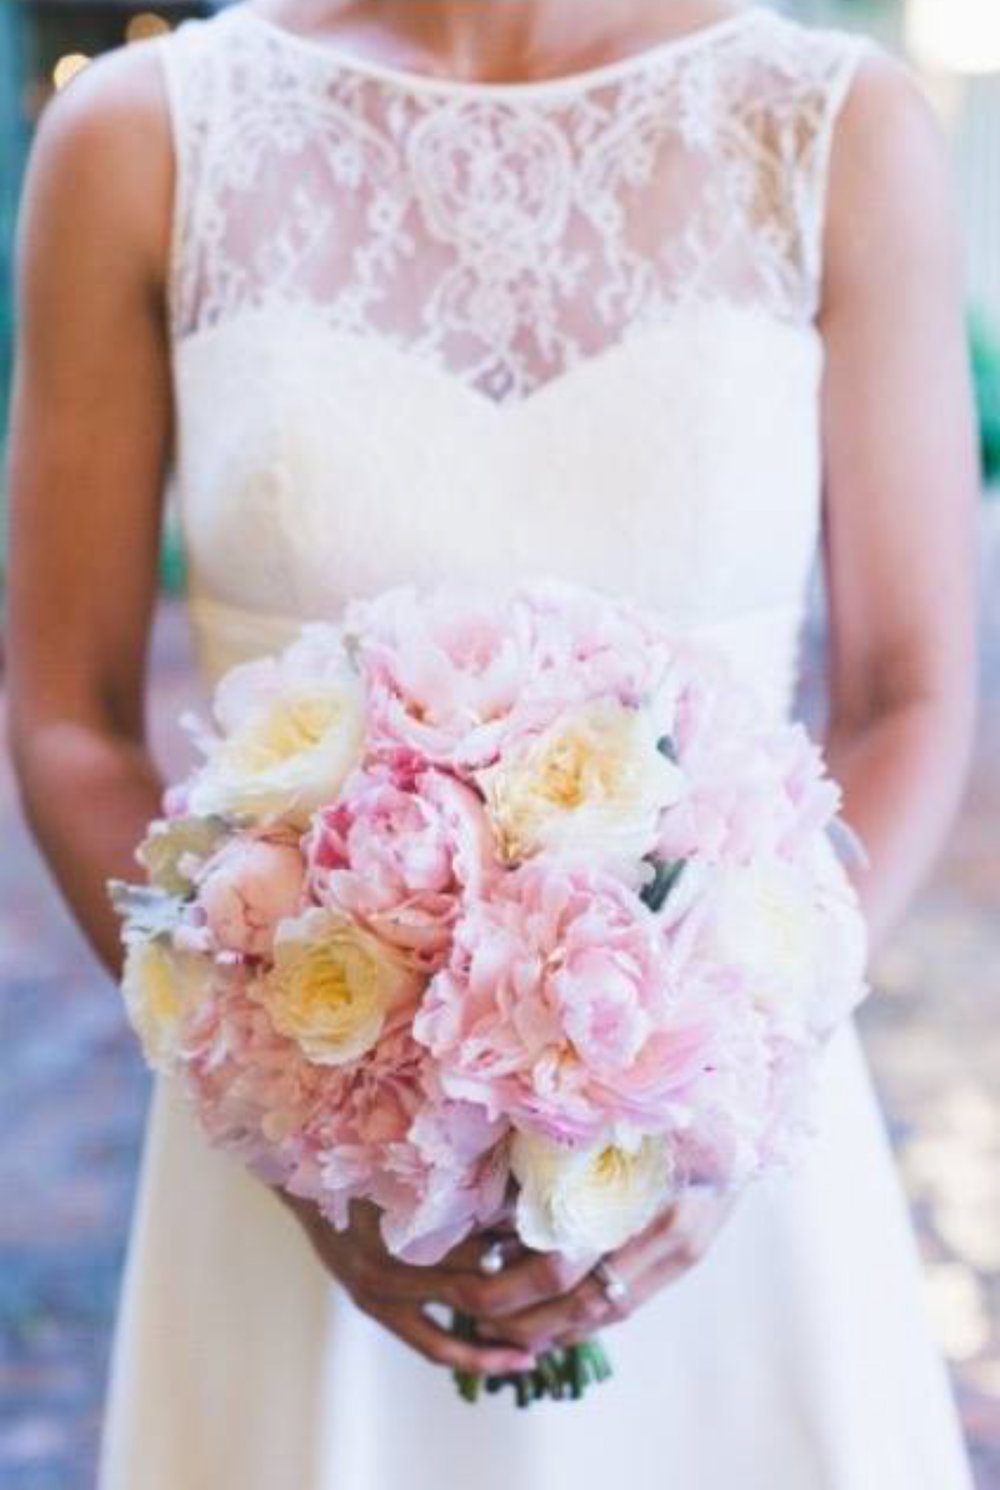 Round wedding bouquet - Unbridely